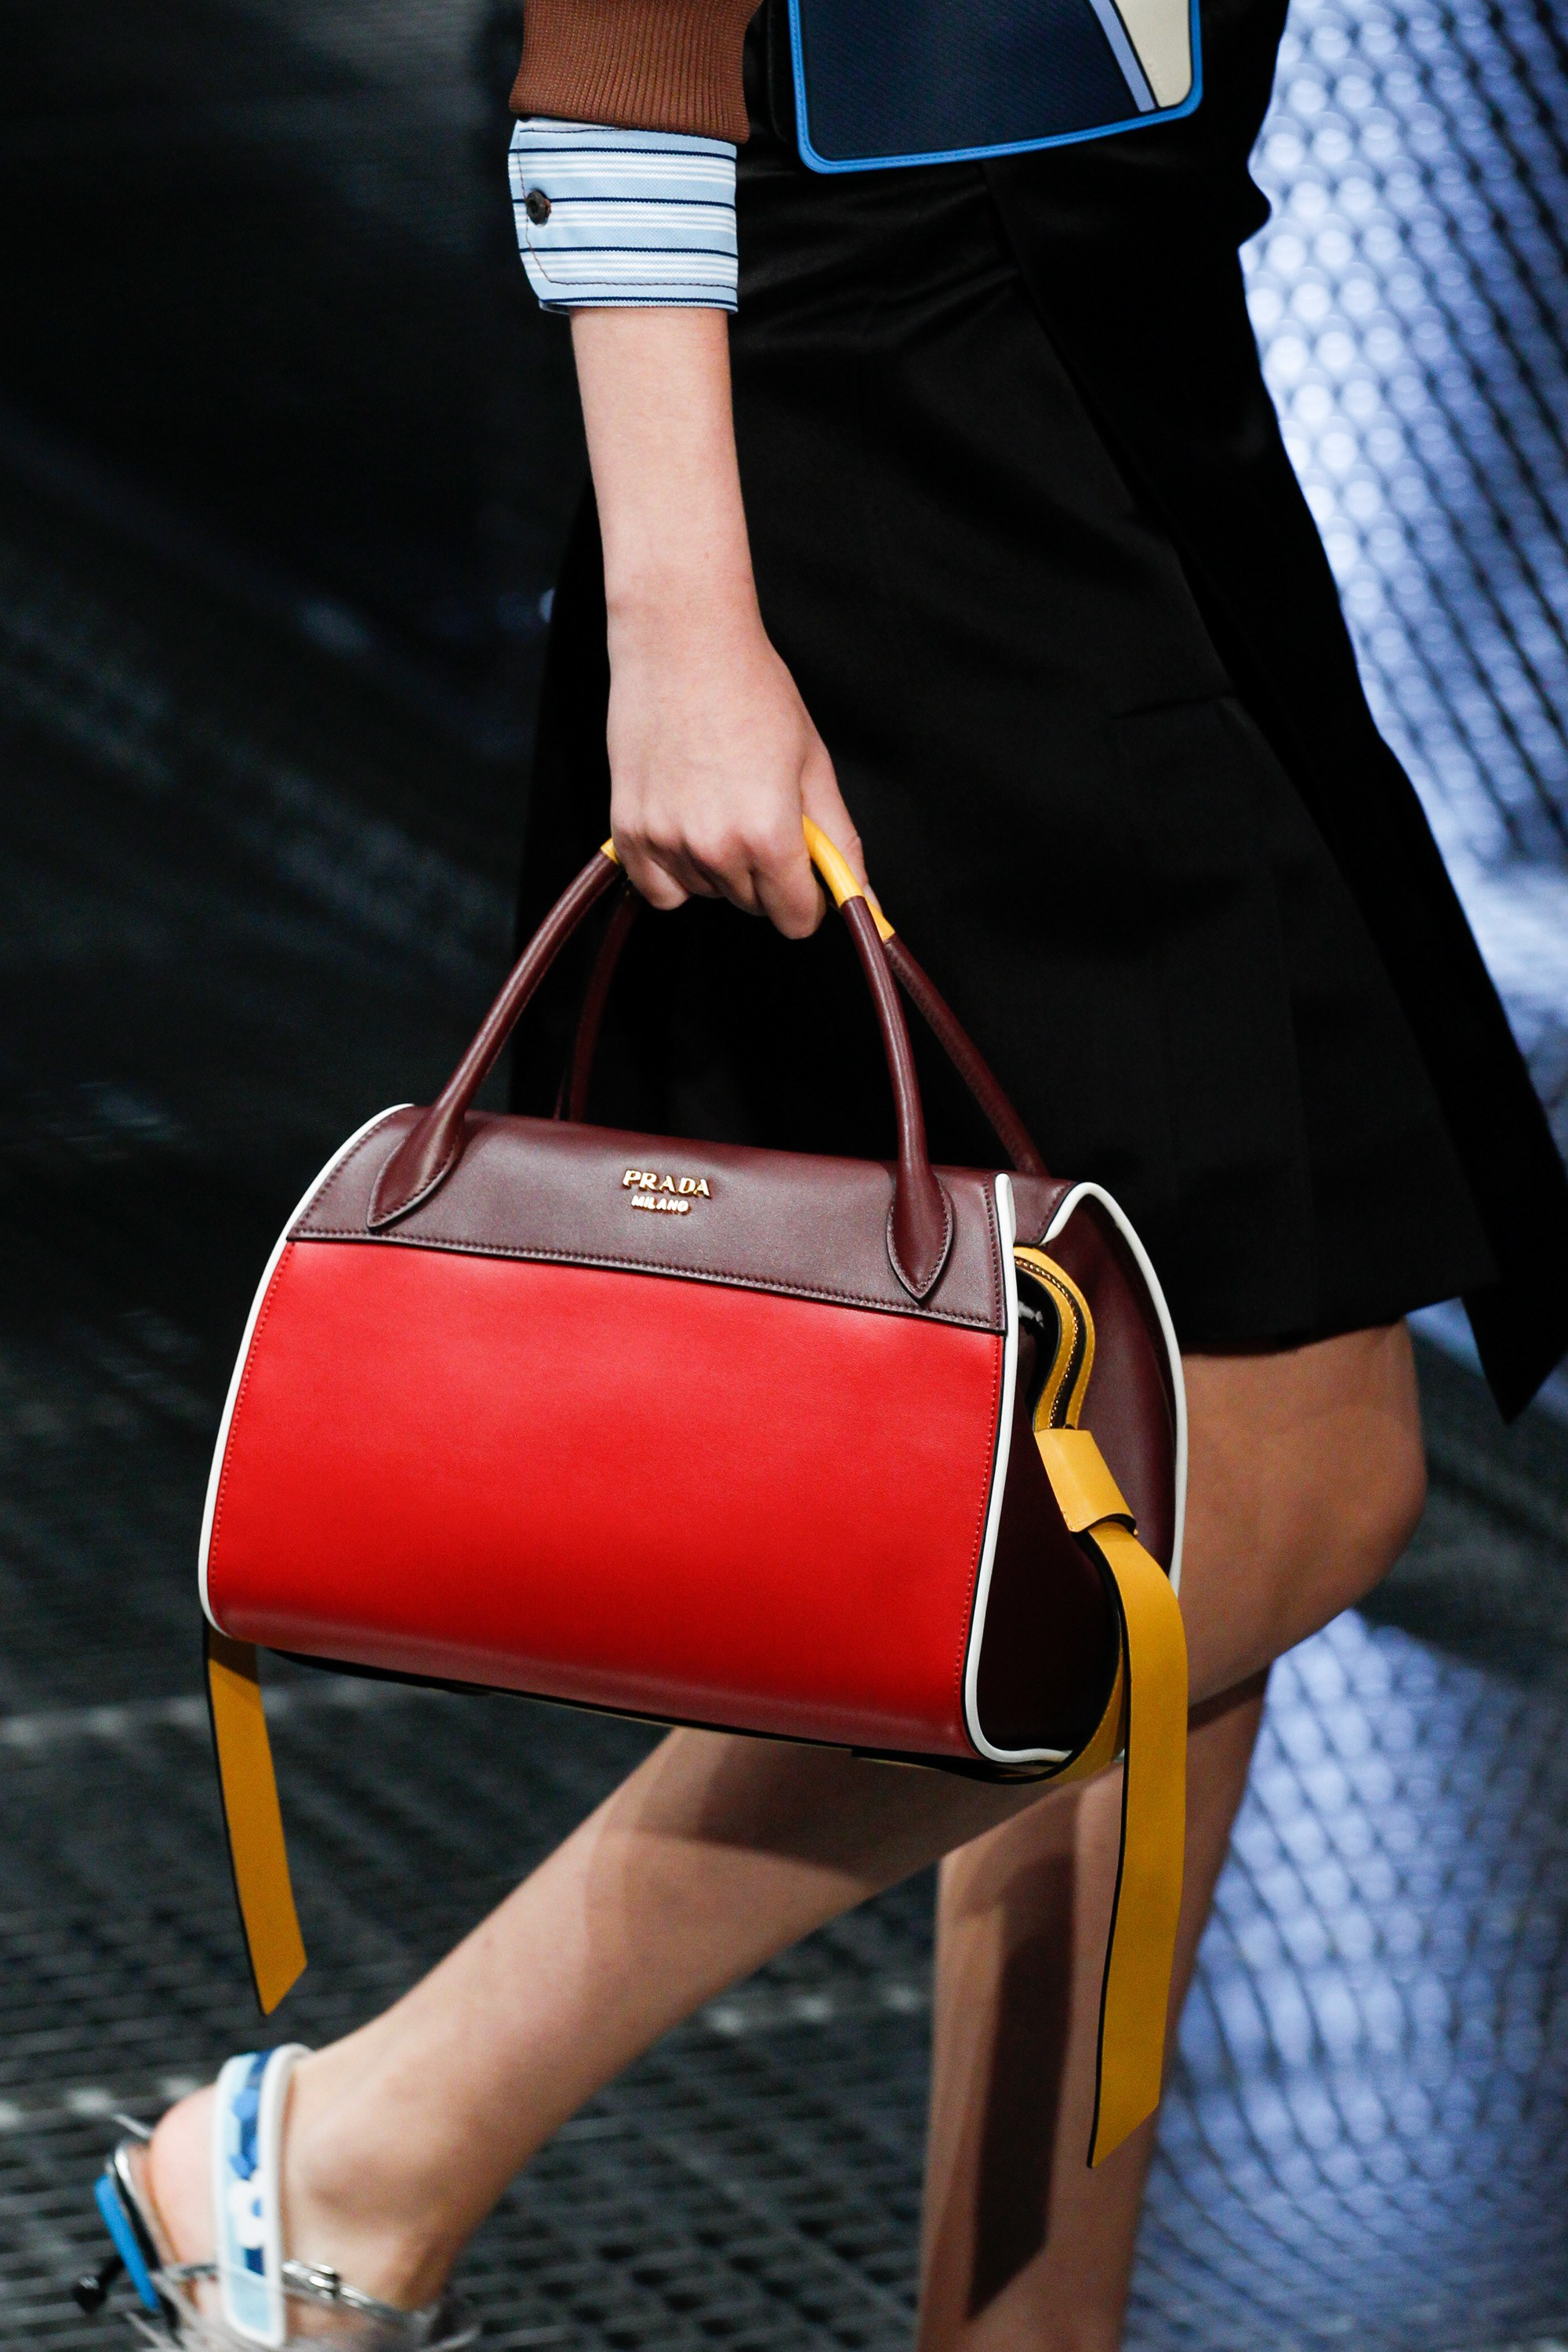 Prada Spring Summer 2017 Runway Bag Collection Spotted